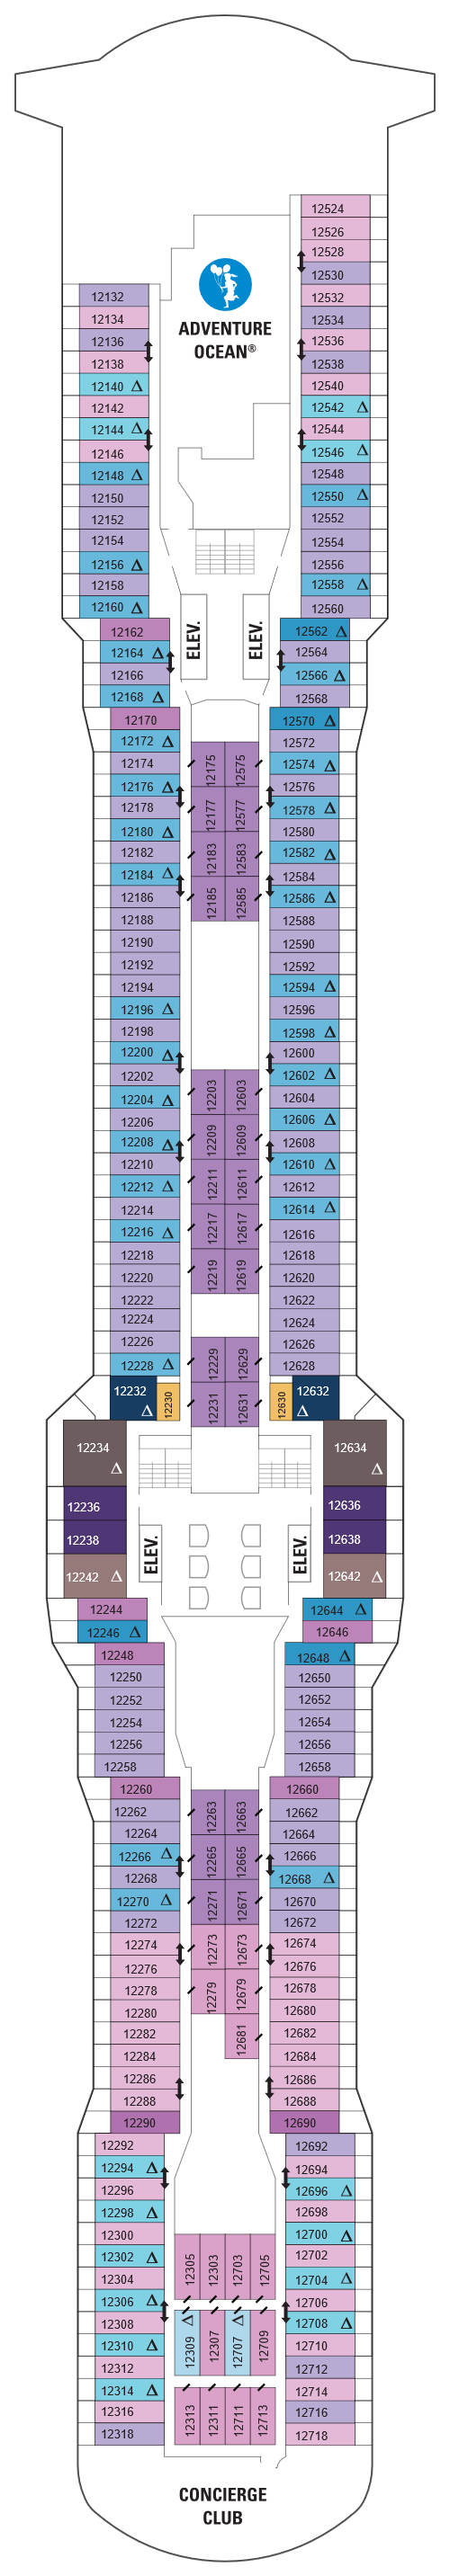 Quantum Of The Seas Deck 12 layout